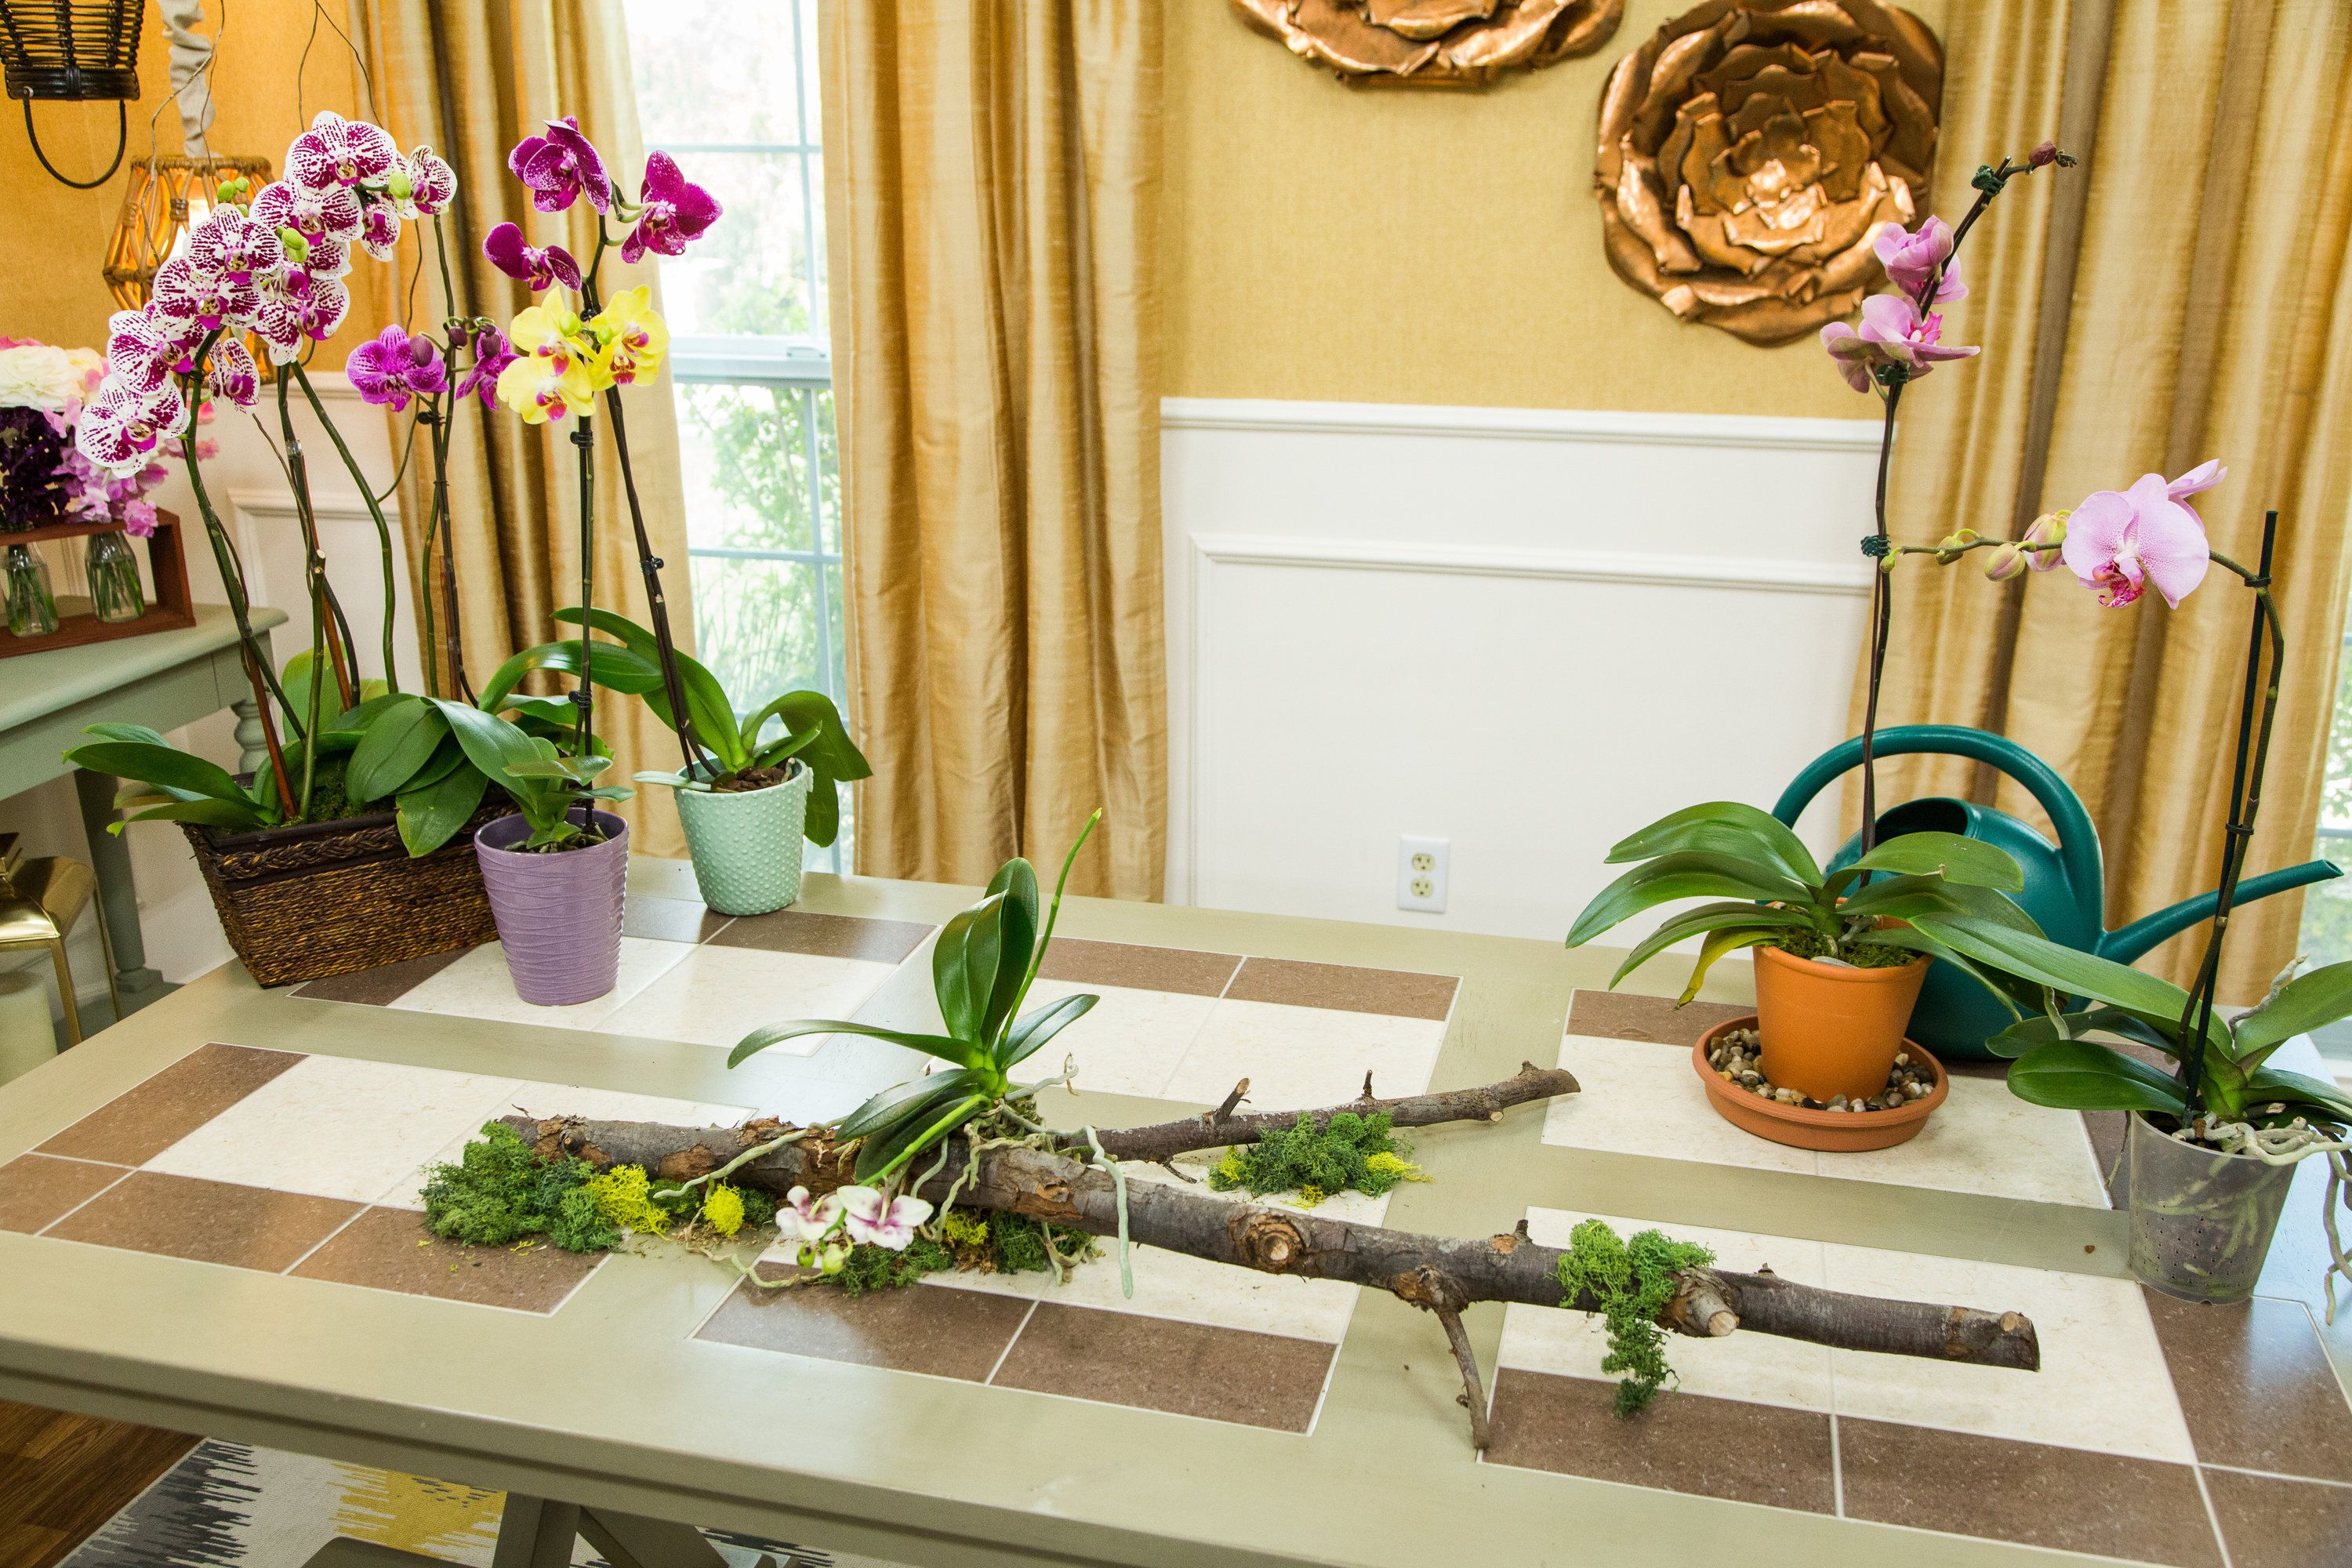 Edenmakersblog is helping you take care of your orchids donut miss